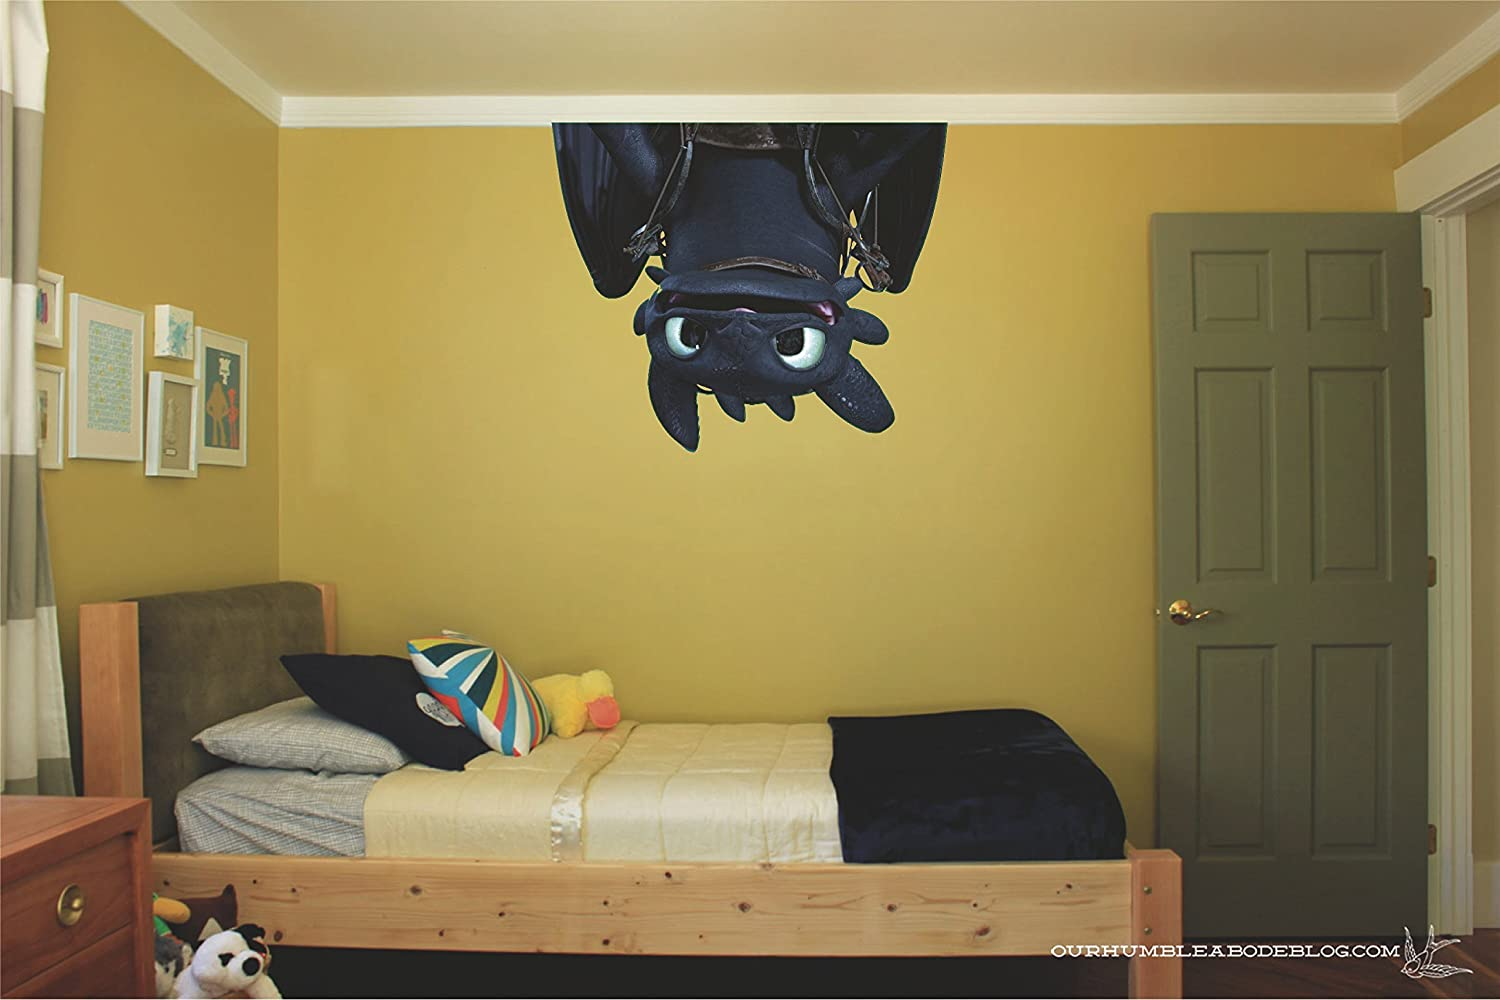 Toothless How to train your dragon Movie 3D Wall Decal Sticker